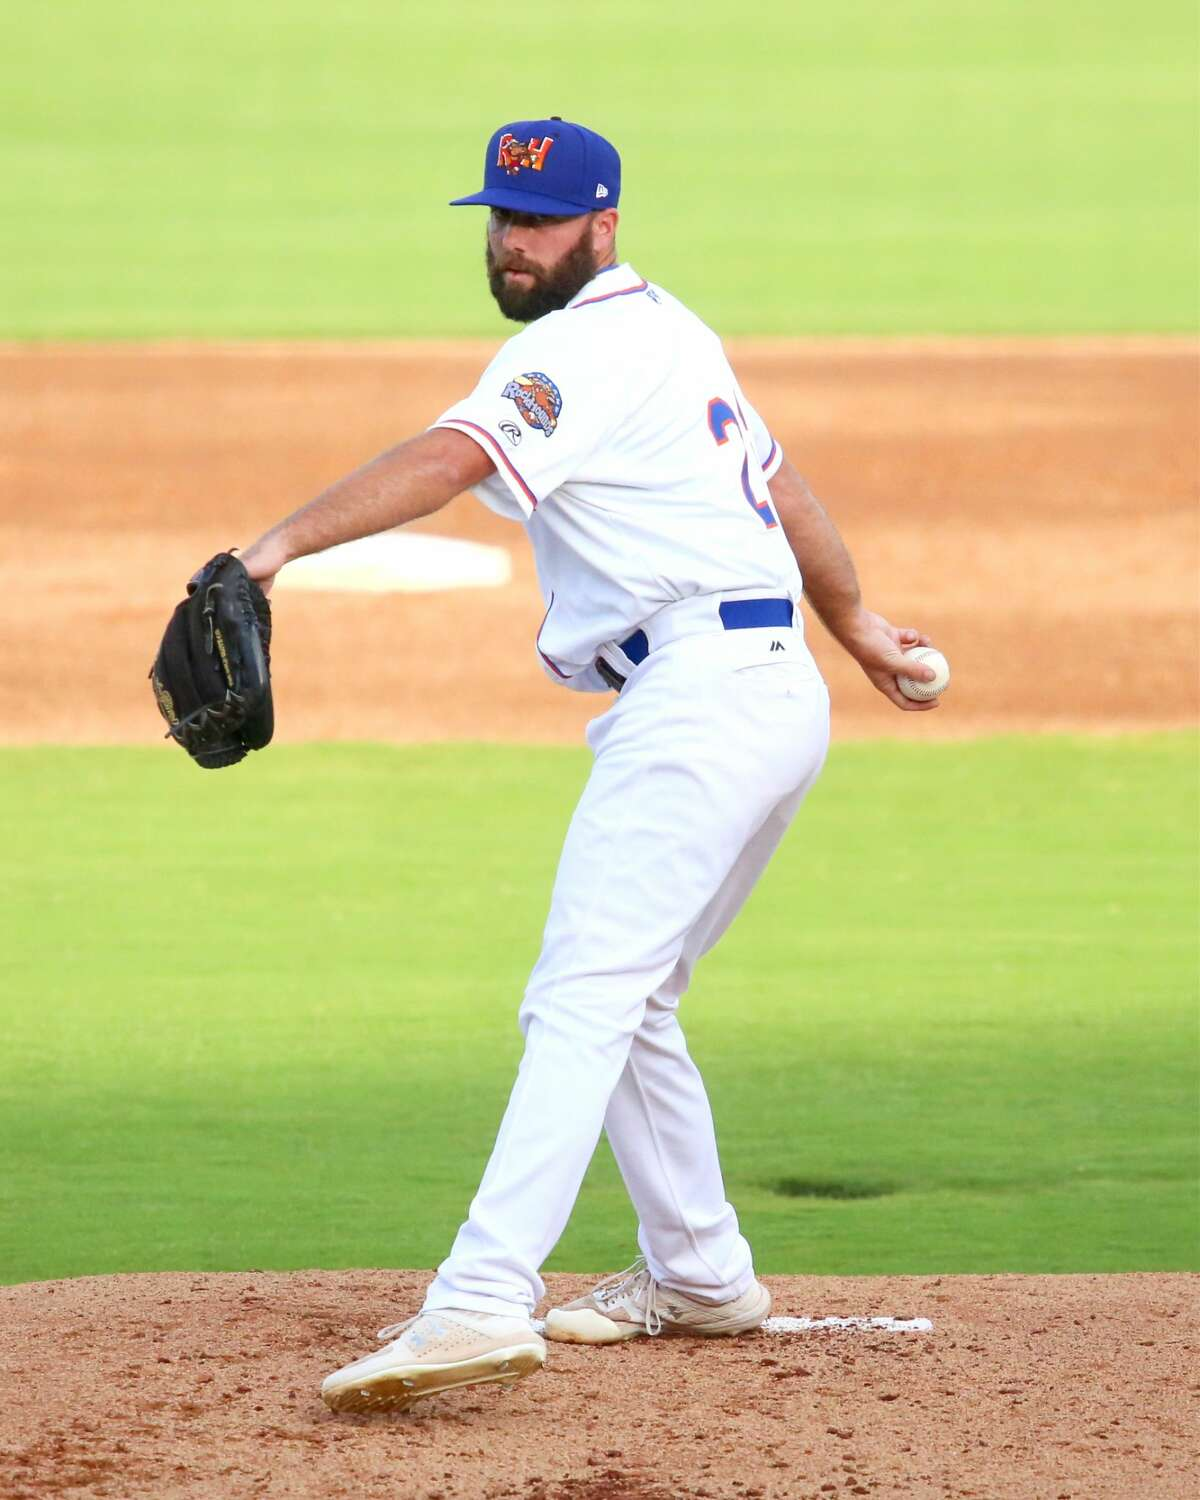 Midland RockHounds pitcher Kyle Friedrichs is shown throwing a pitch during a game this season at Security Bank Ballpark.